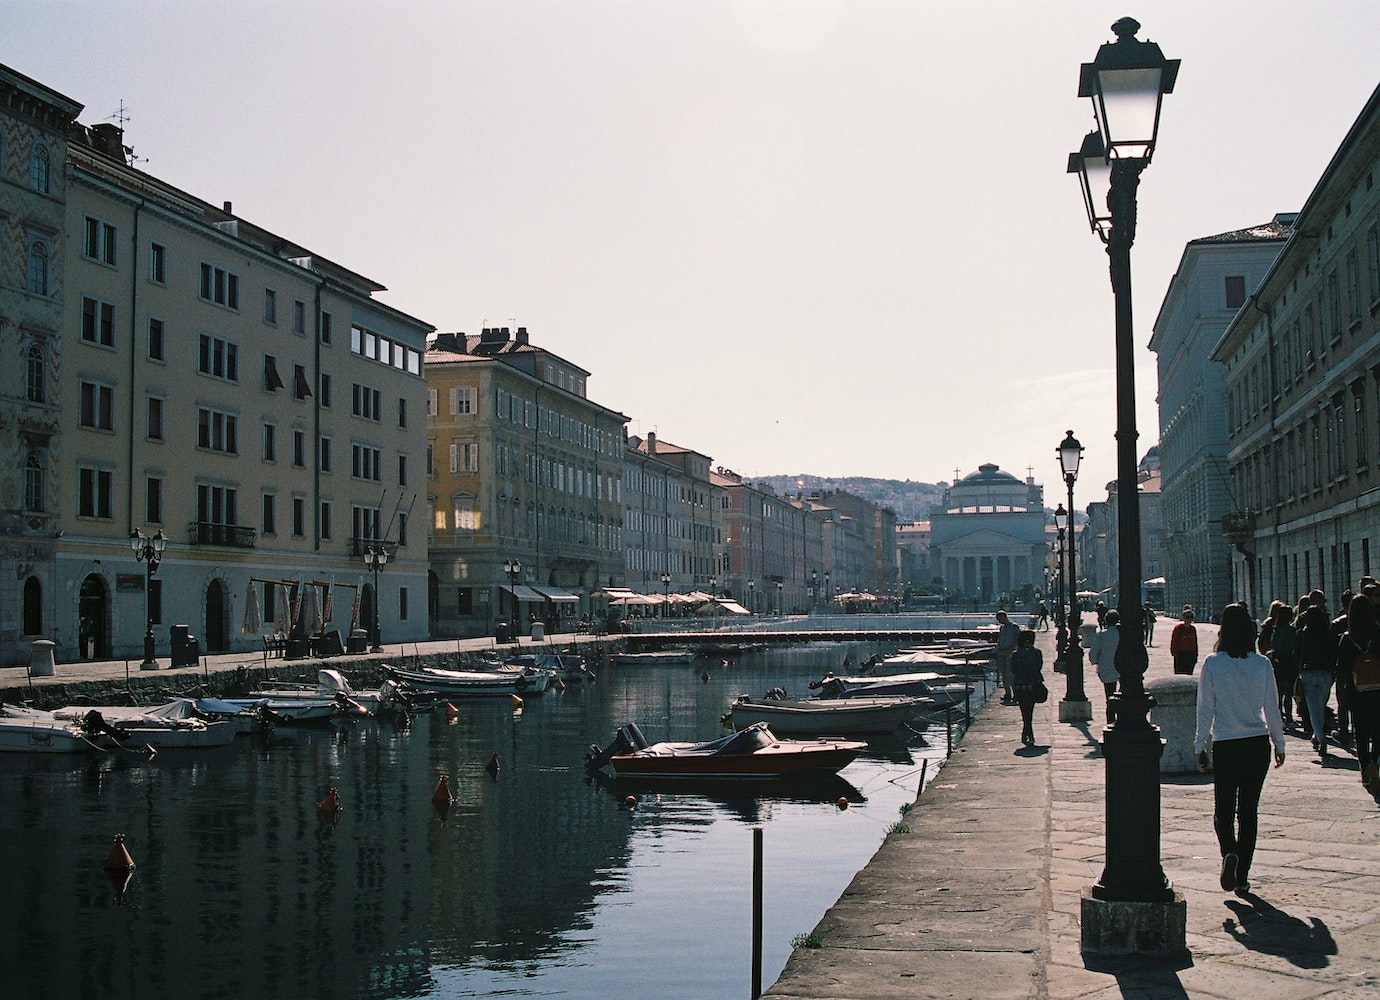 Letter from Trieste: the coastal city struggling with the scars of Italian-Yugoslav conflict